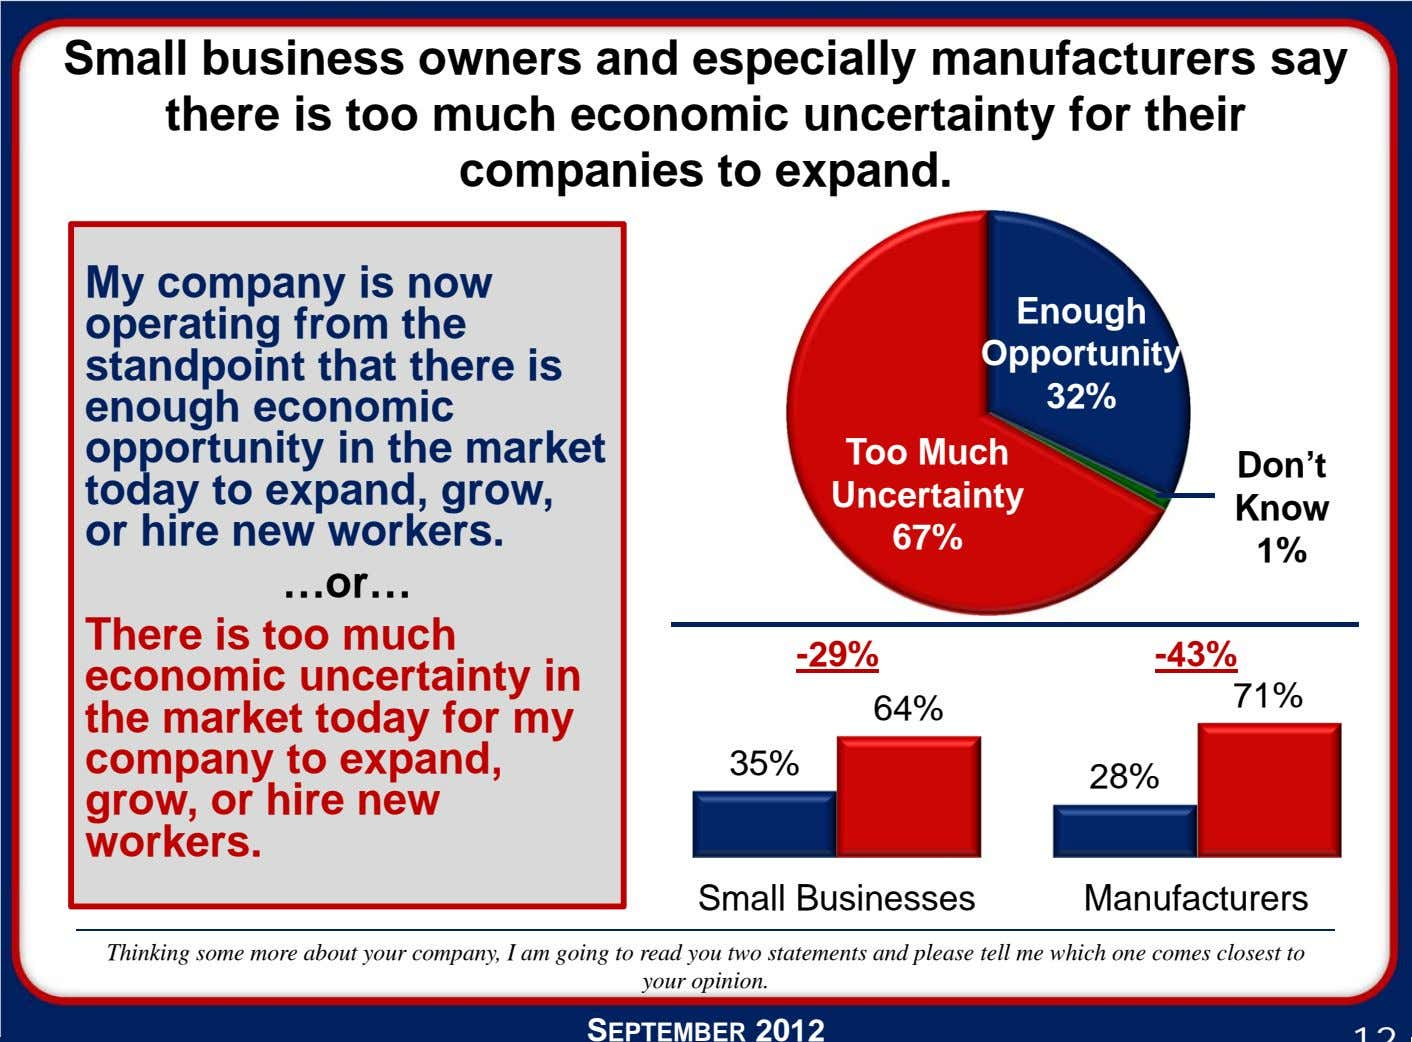 Small business owners and especially manufacturers say there is too much economic uncertainty for their